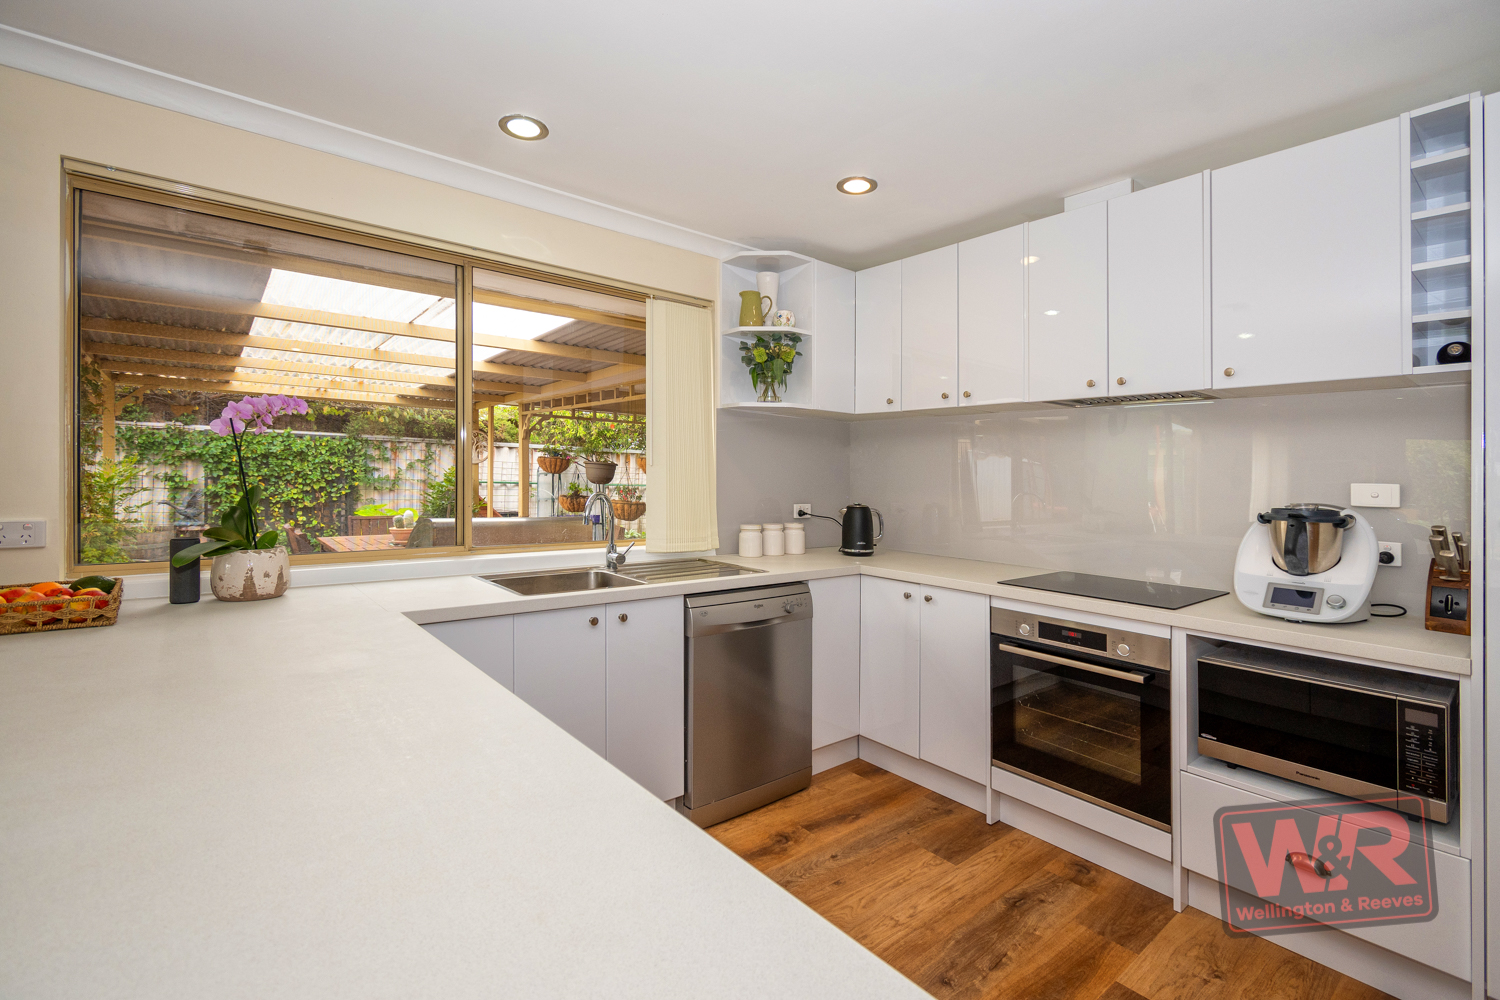 Property ressale in COLLINGWOOD PARK